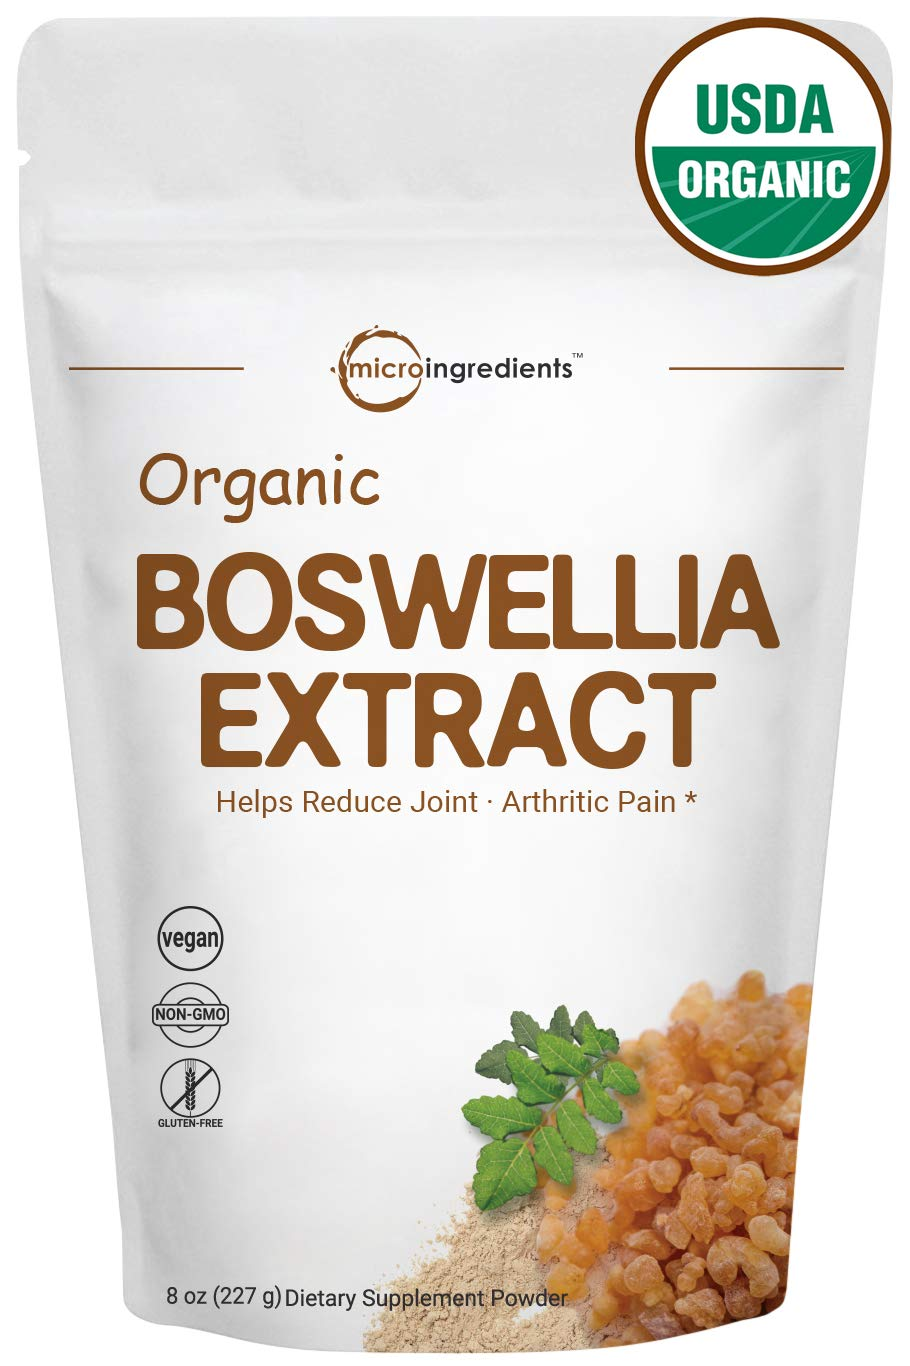 Pure Organic Boswellia Serrata Extract Powder, 8 Ounce,Powerfully Supports Joints, Knees and Bones Health, Non-GMO and Vegan Friendly